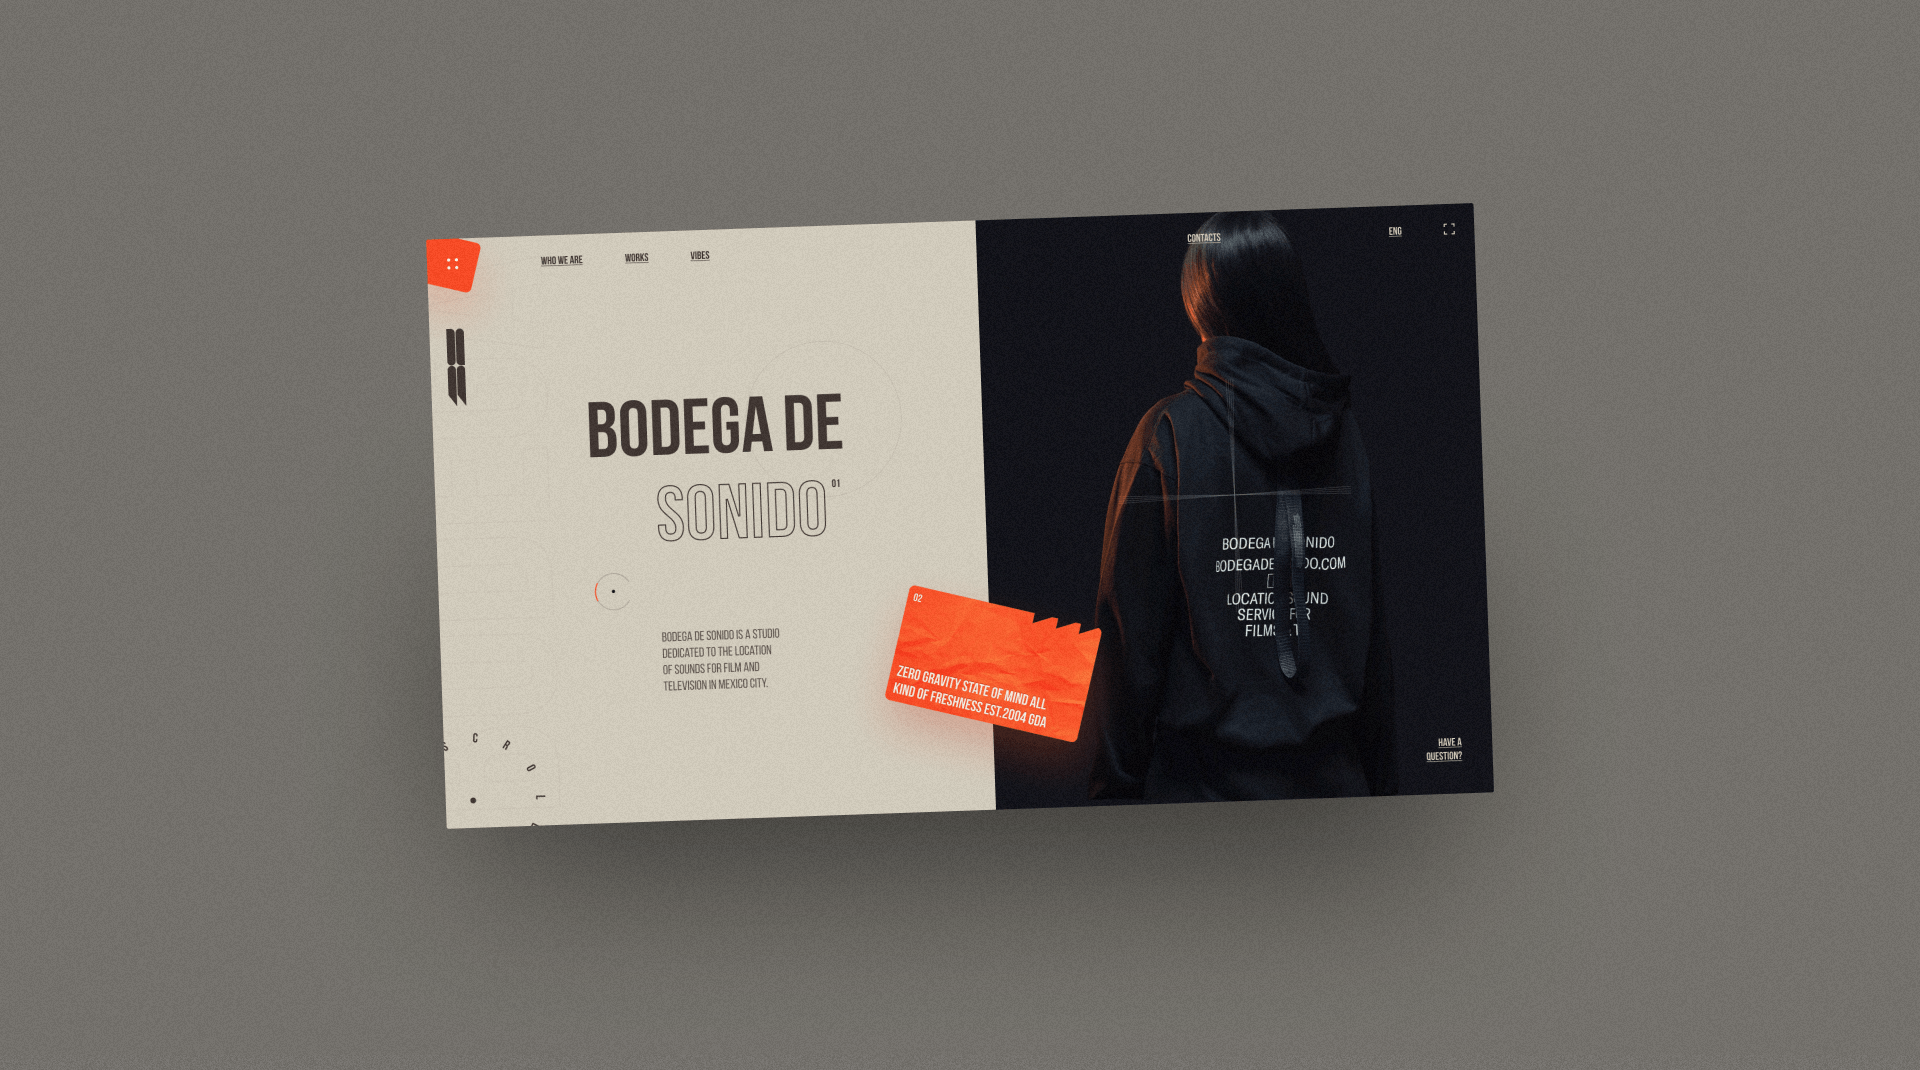 Stylish Web Design for Bodega de Sonido